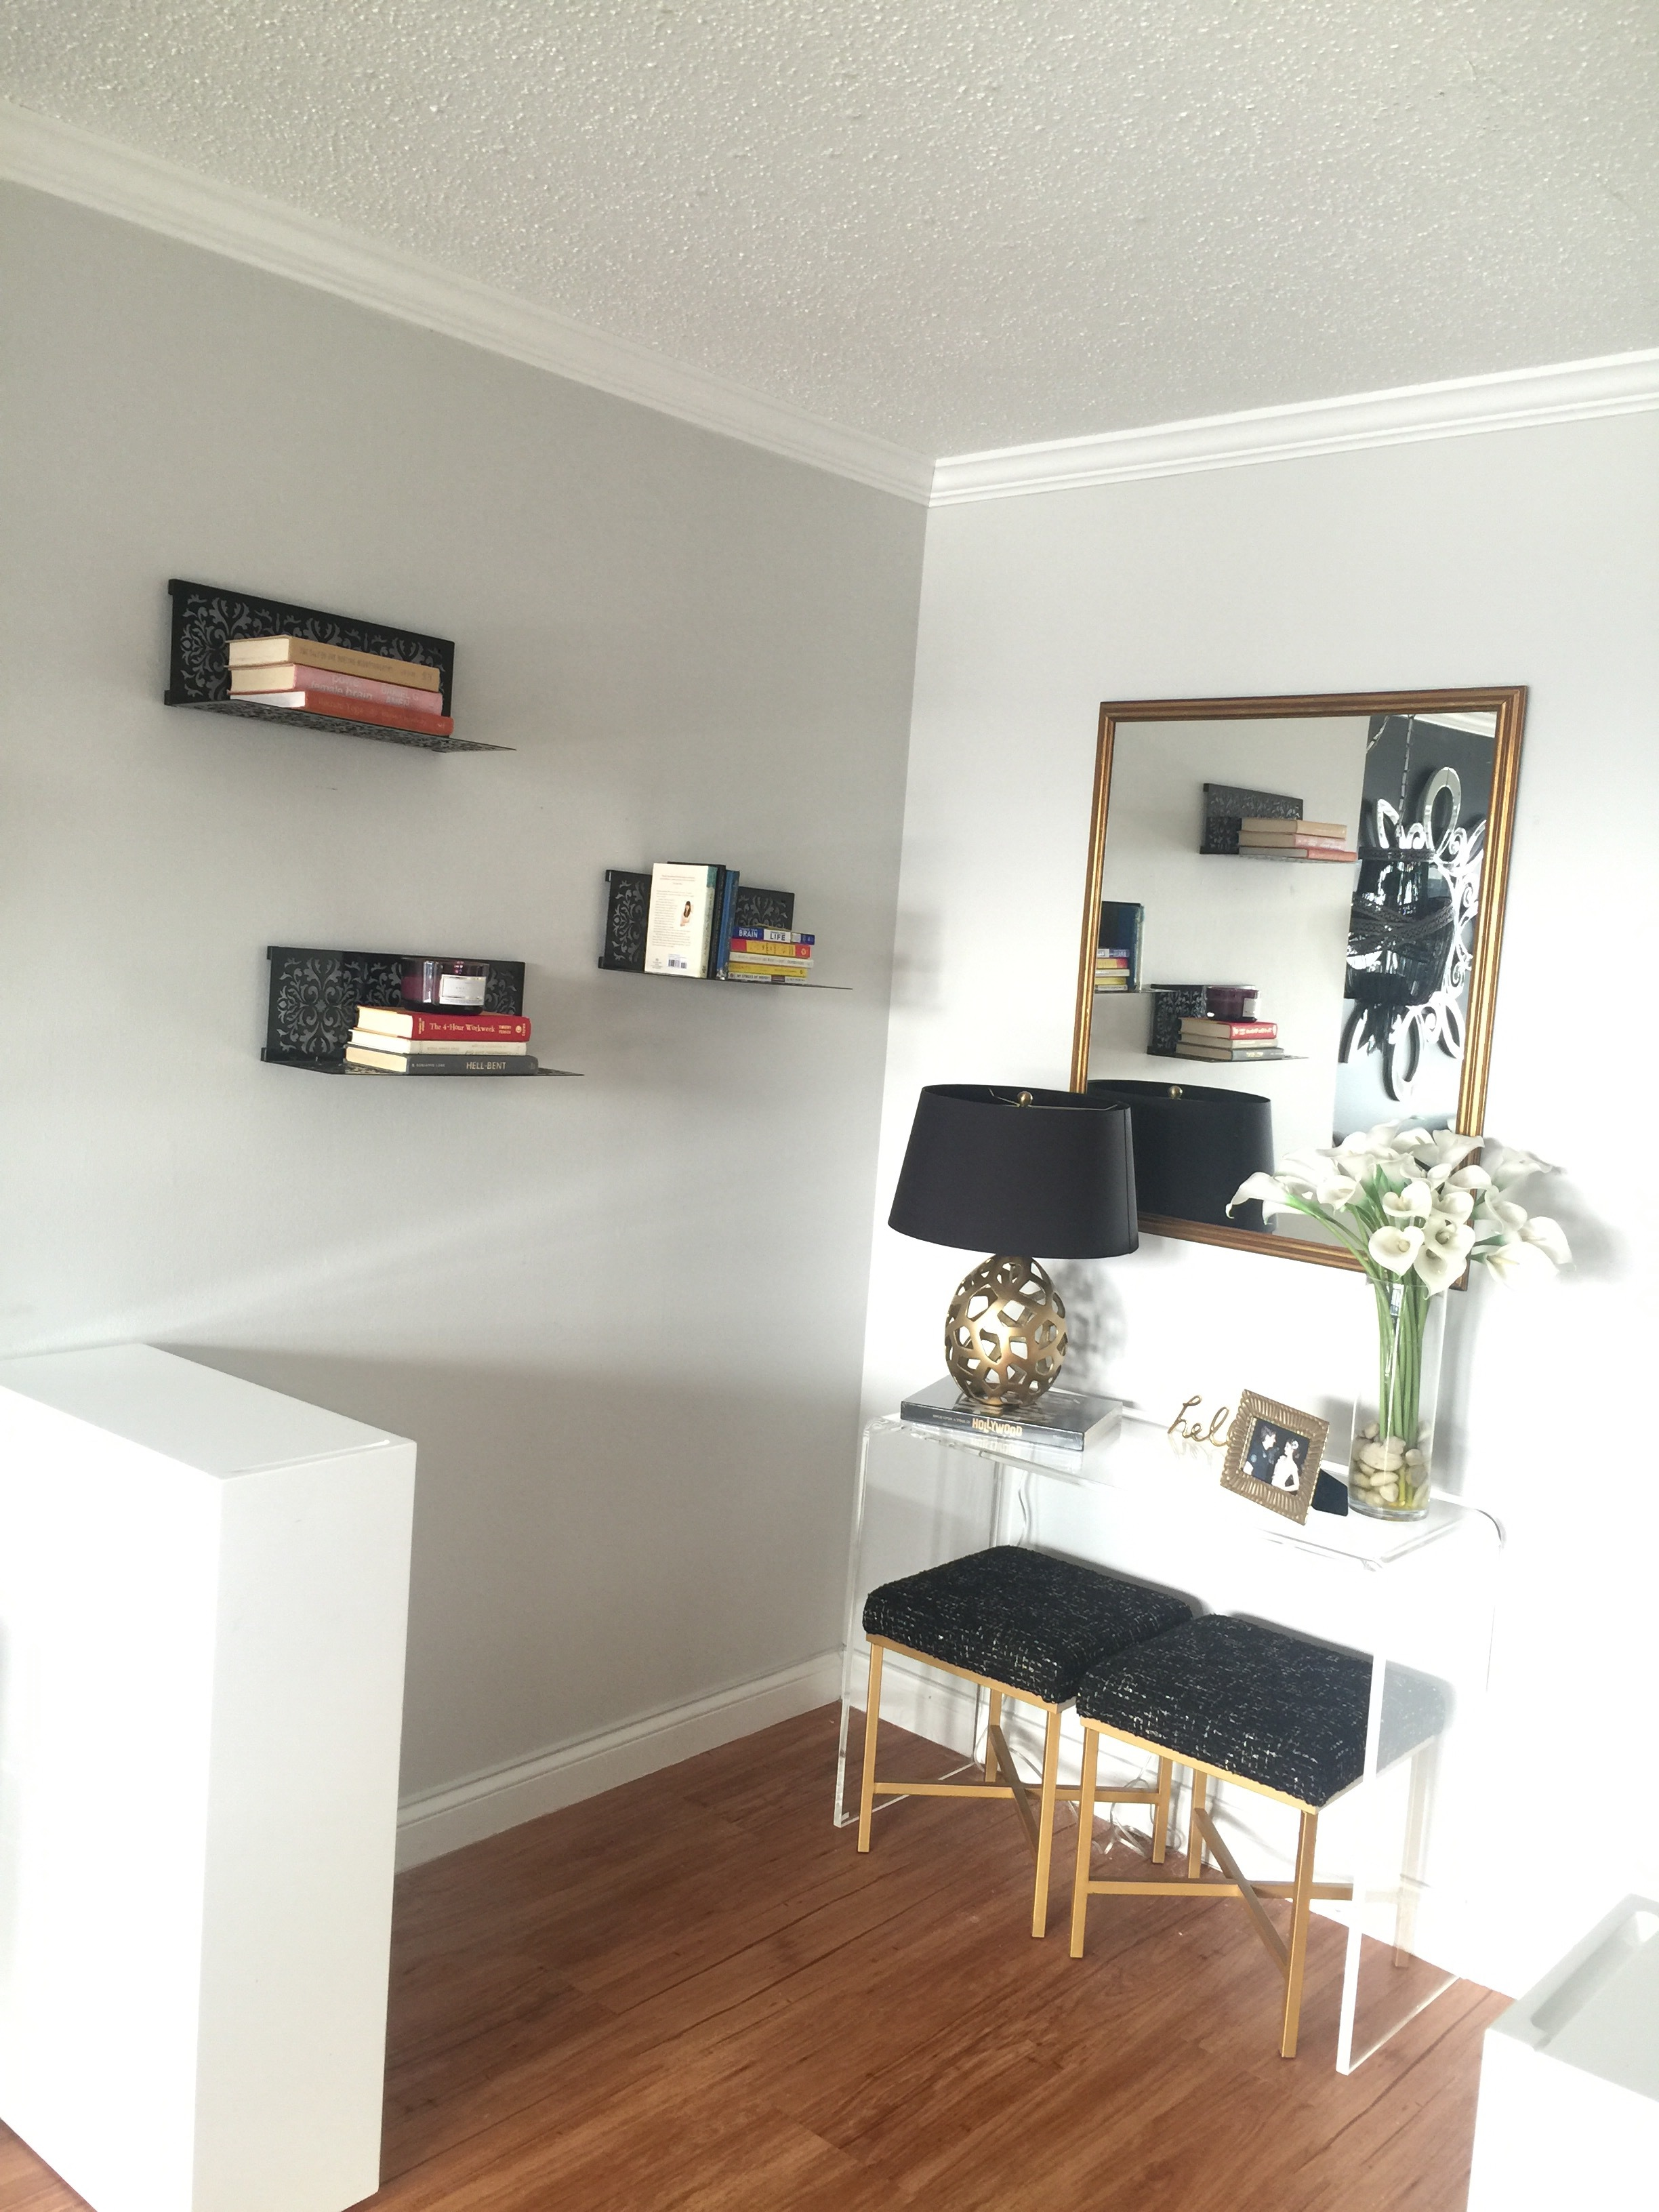 Black Metal floating shelves create interest with the rest of the decor in this entry way.